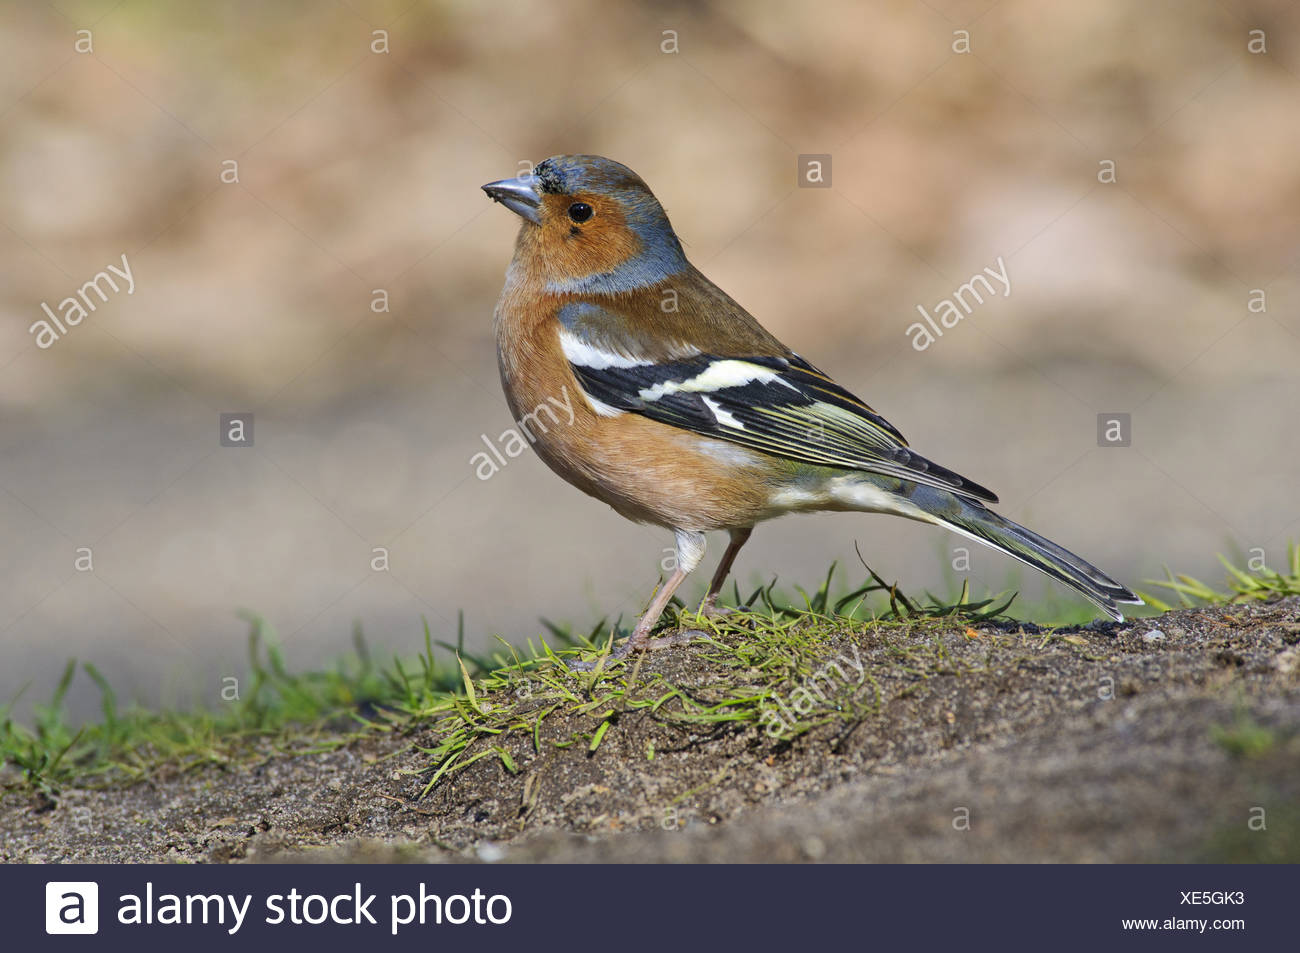 Chaffinch (Fringilla coelebs) adult male, foraging on ground under birdfeeders, Minsmere RSPB Reserve, Suffolk, England, - Stock Image